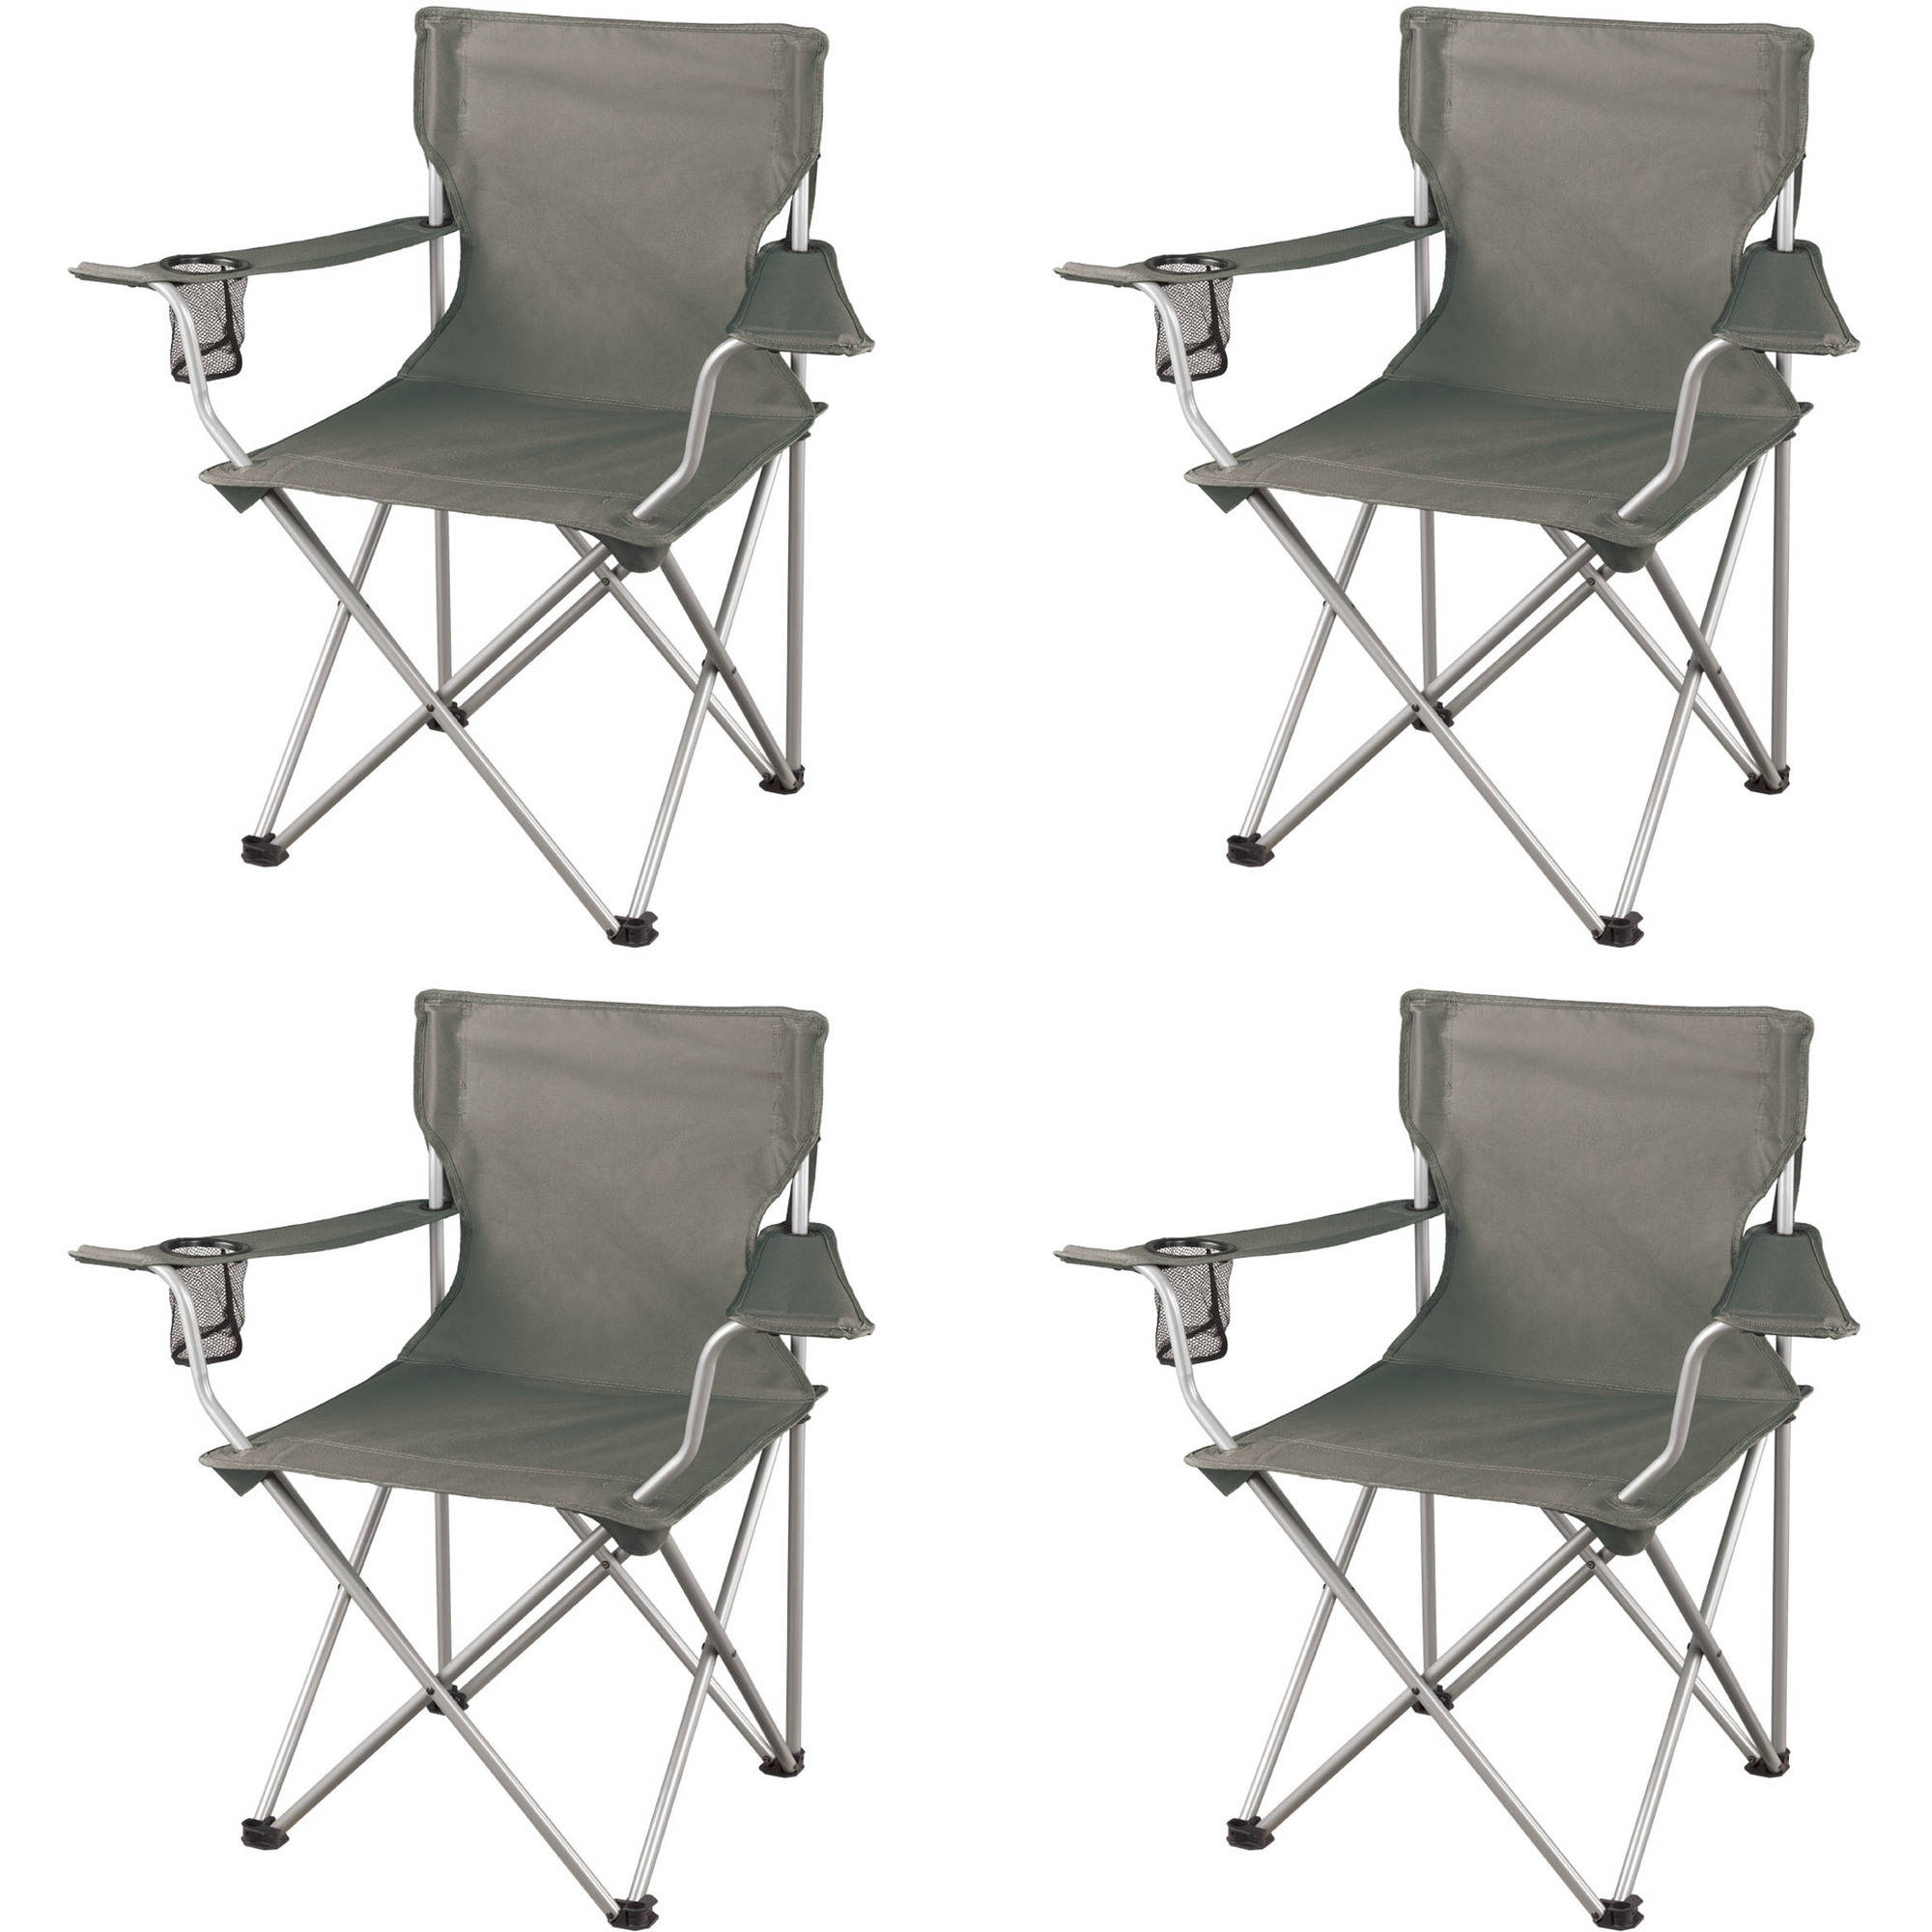 Ozark Trail Regular Arm Chairs Set of 4 Folding Camping Seat New